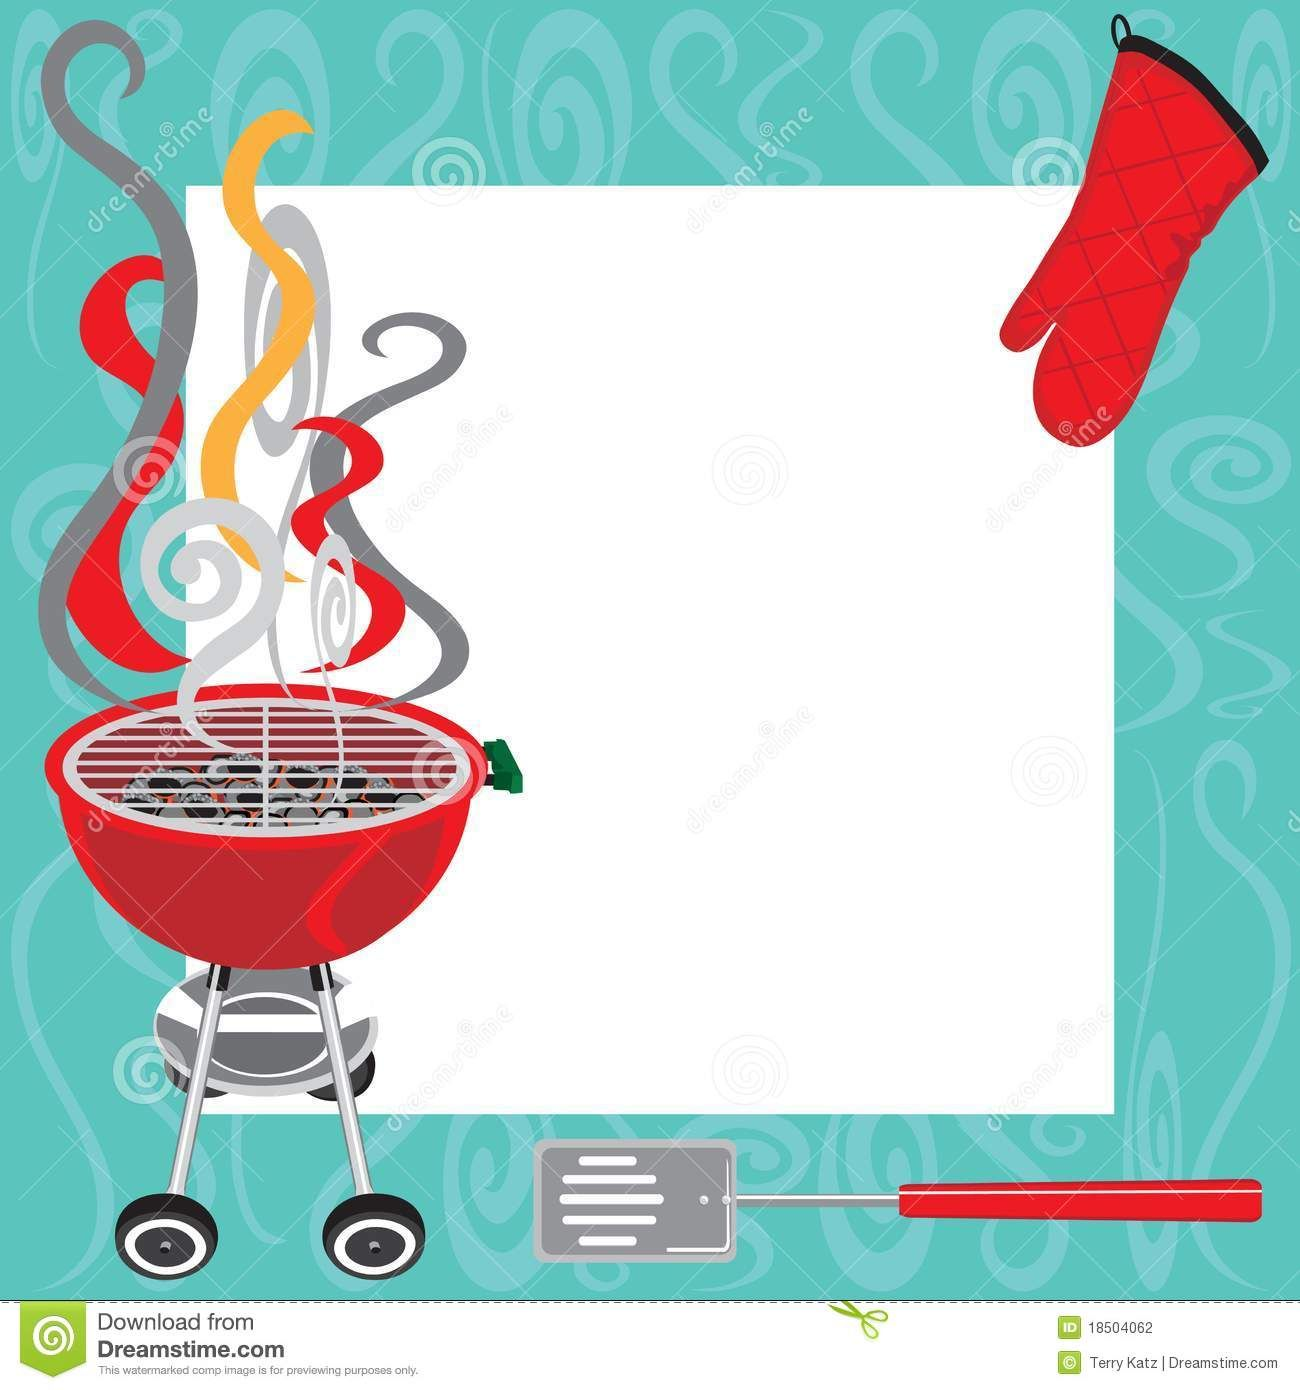 Free Printable Bbq Party Invitation Templates Bbq Party